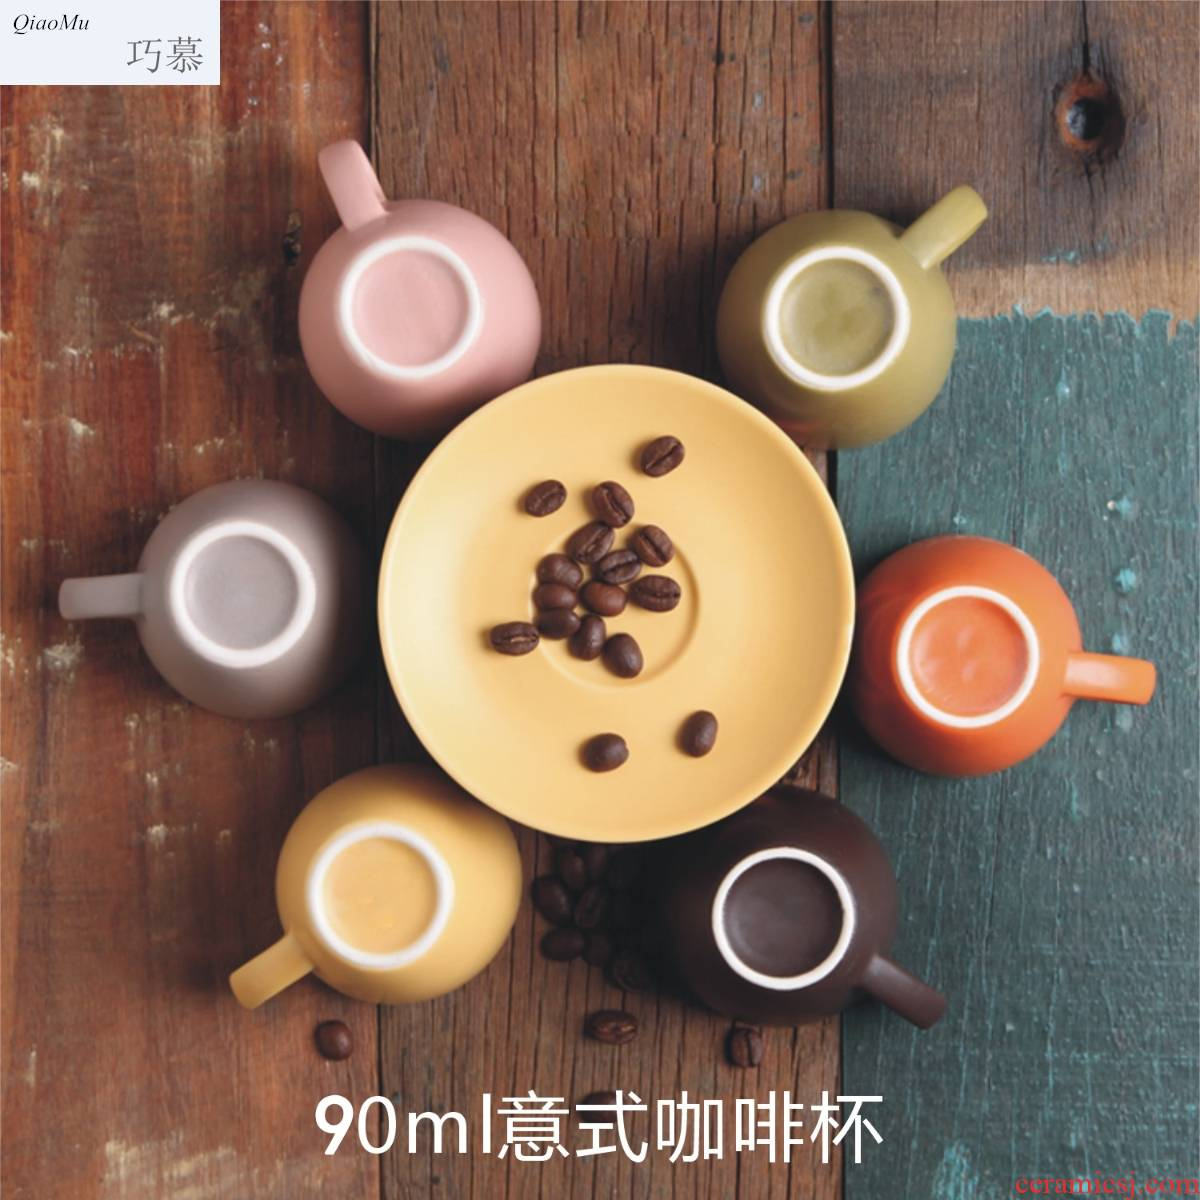 Qiao mu matte enrolled glaze ceramic coffee cups and saucers European - style places cup 300 ml200ml90ml inferior smooth cup of red tea cups